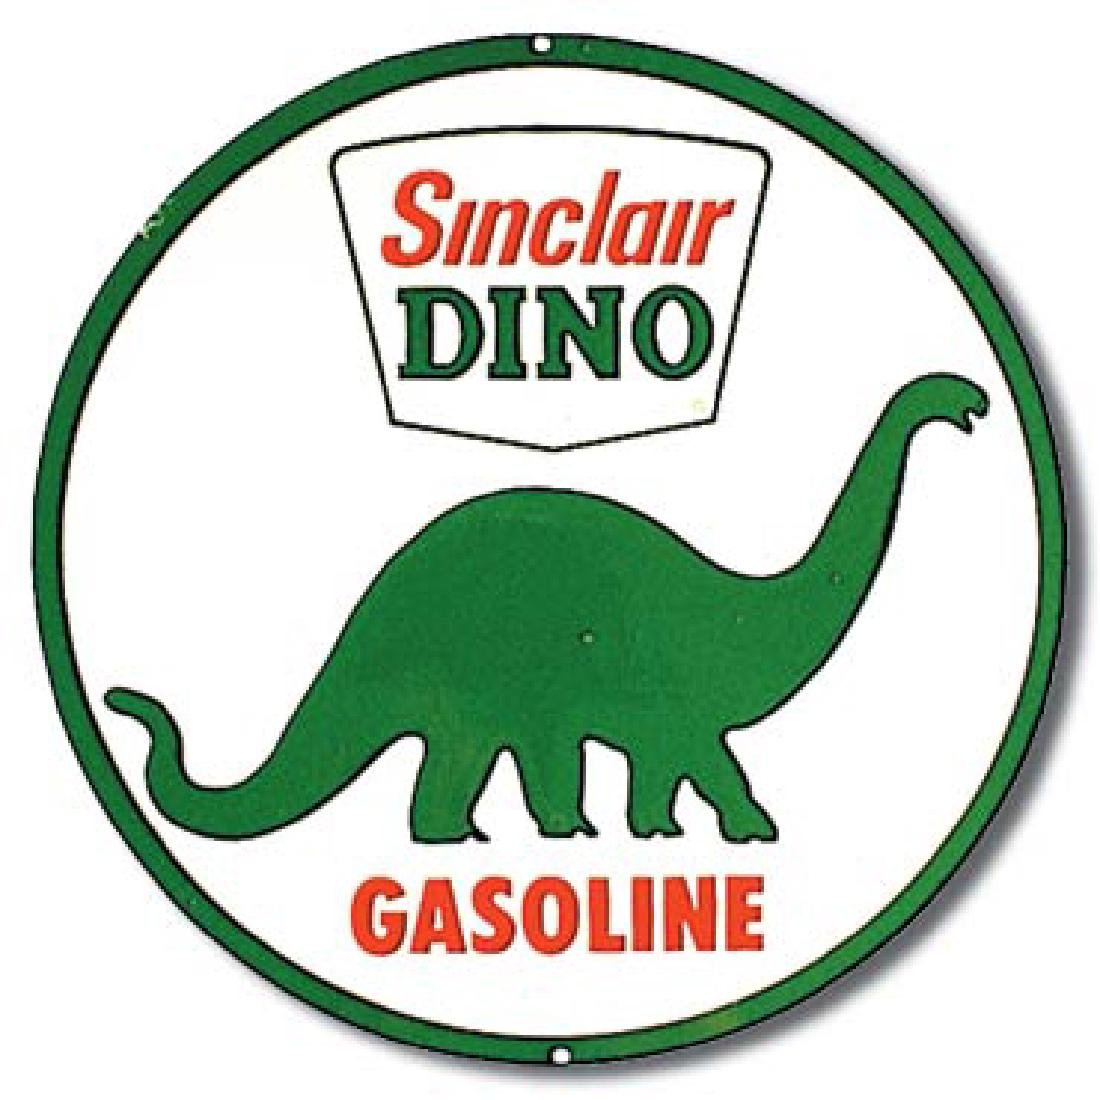 "SINCLAIR METAL SIGN 12"" ROUND"